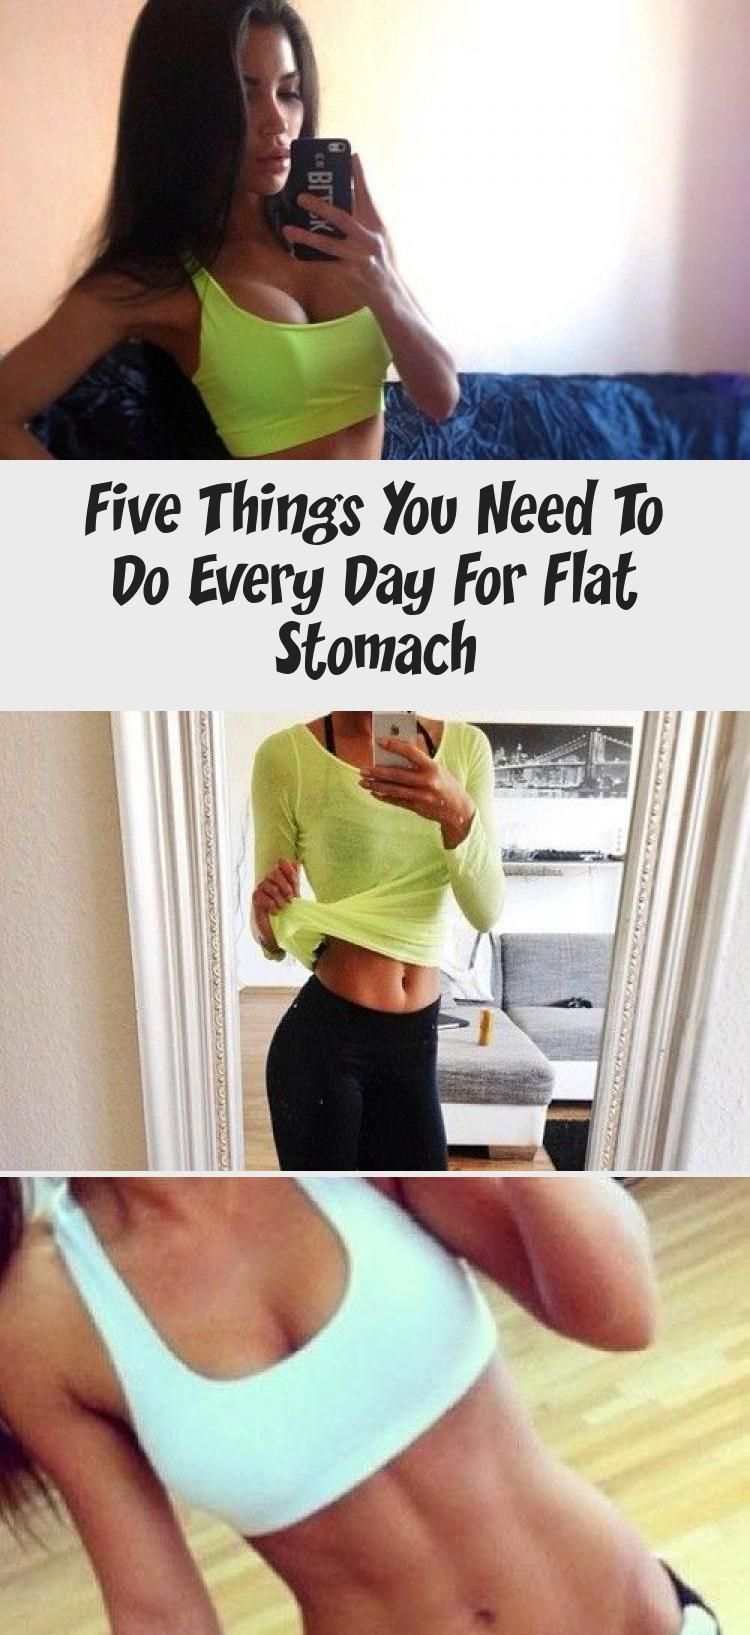 Workout clothes for Women | #fitness #model #exercise #womensfitnessinspirationBeautiful #womensfitn...